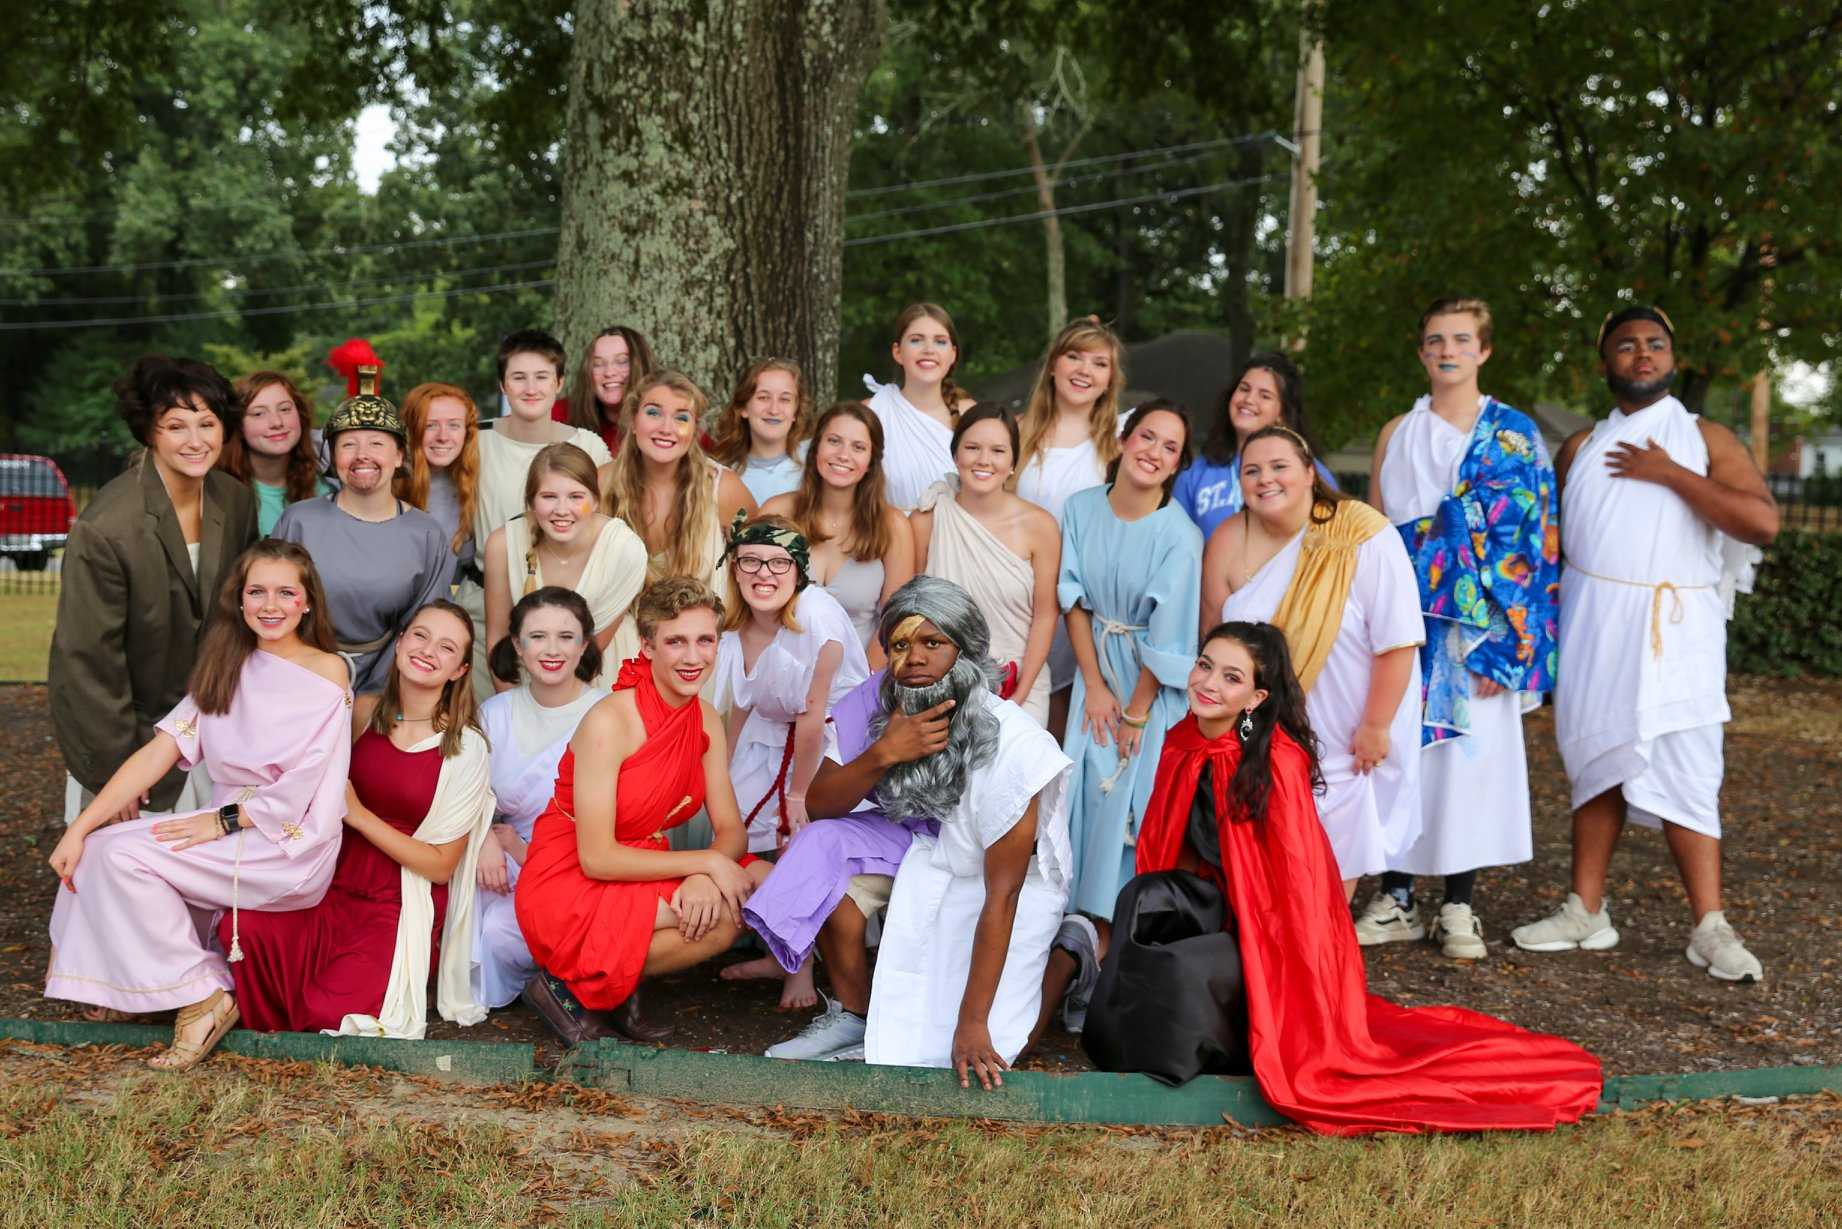 Theatre Department Presents The Iliad, the Odyssey, and All of Greek Mythology in 99 Minutes or Less